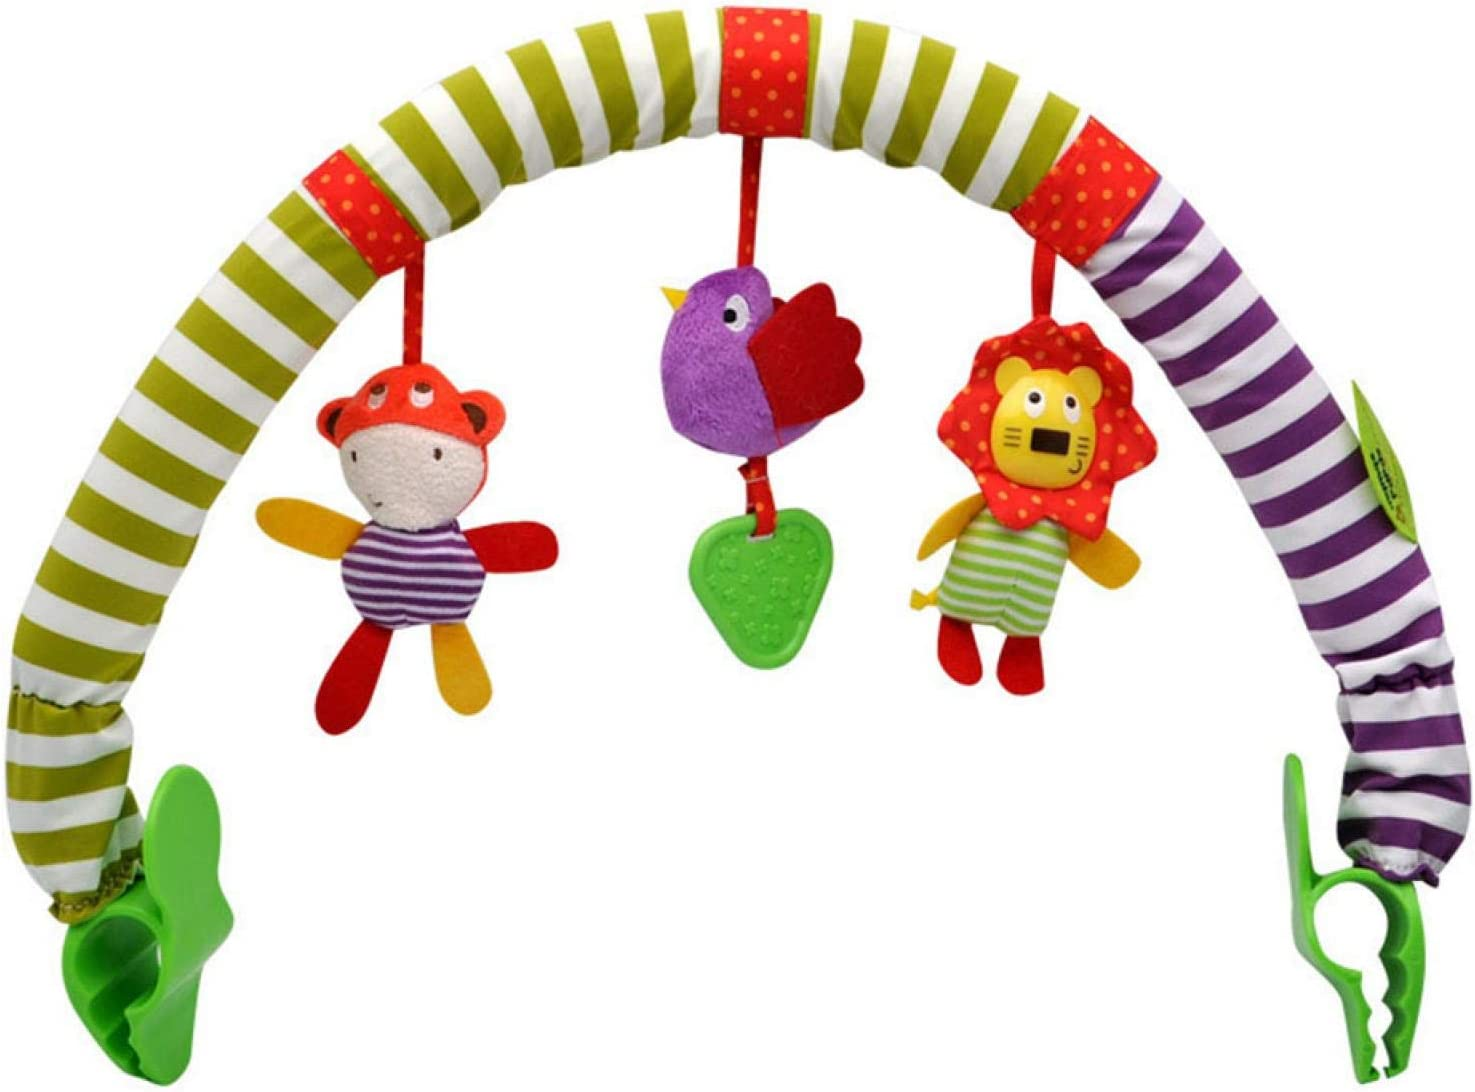 Musical Arch, Stroller Toys, Ideal for Infants & Toddlers, Fits Stroller, Activity Arch with Fascinating Toys, Stimulates Baby's Senses and Motor Skills Development(Bird Lion)